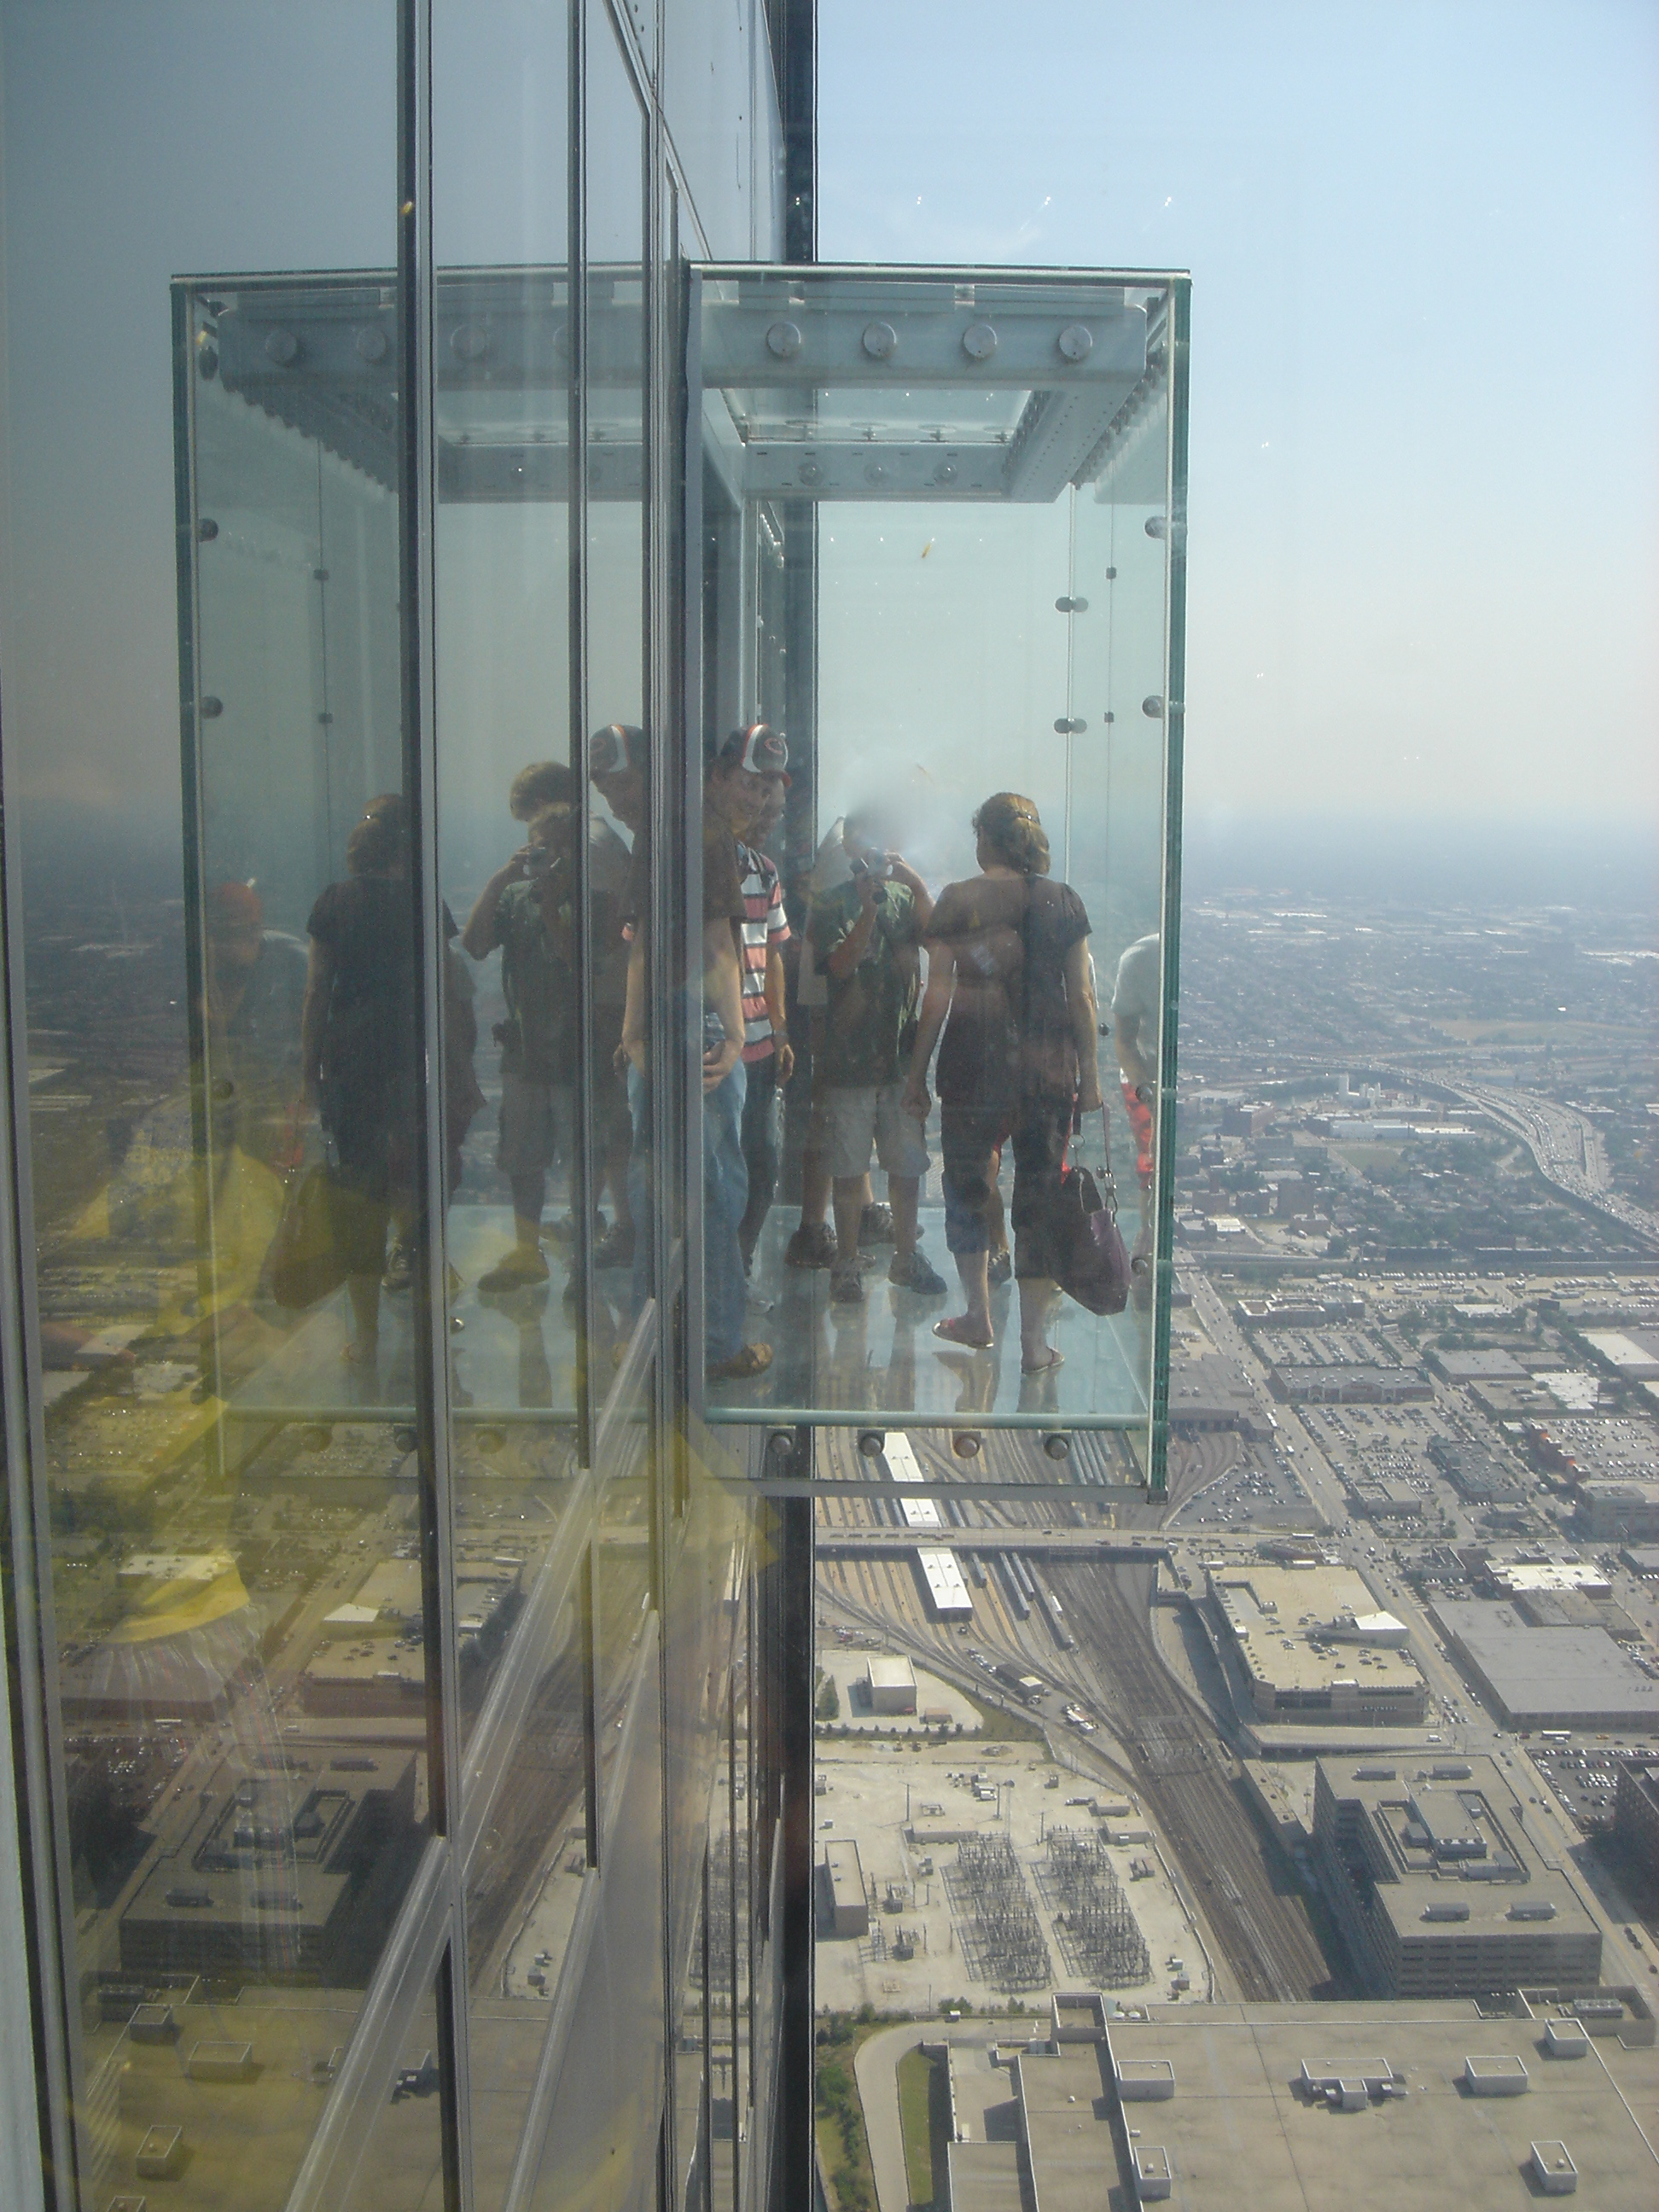 Willis tower skydeck aeworldmapcom over 2400 posts for How many floors are in the sears tower